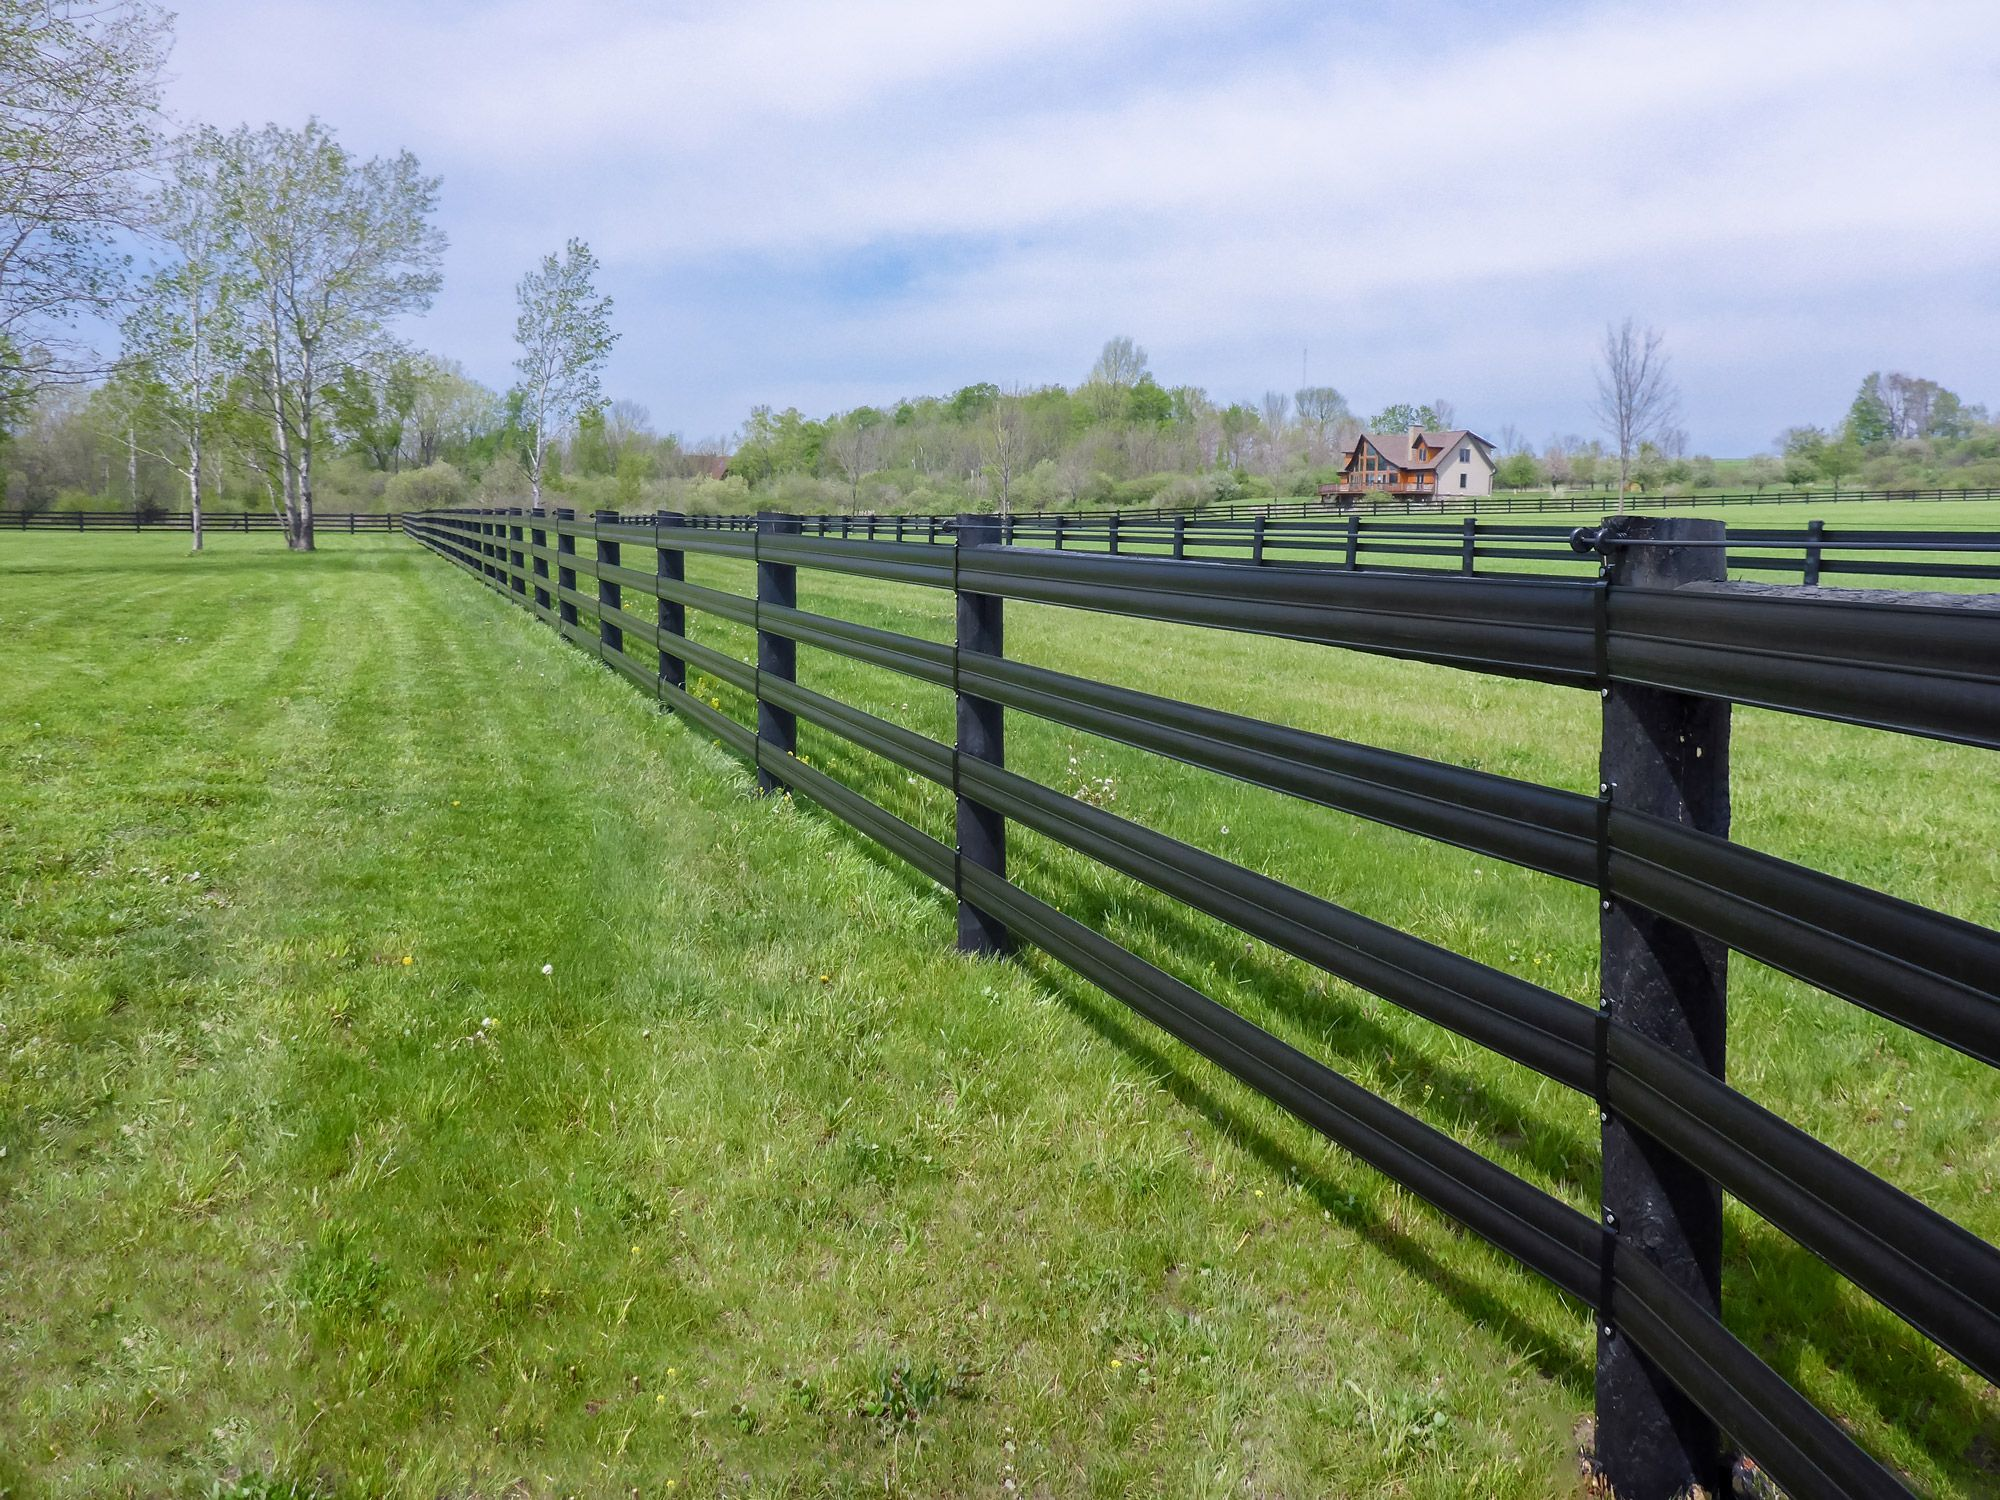 Introducing Your Horses to Electric Fences Safely